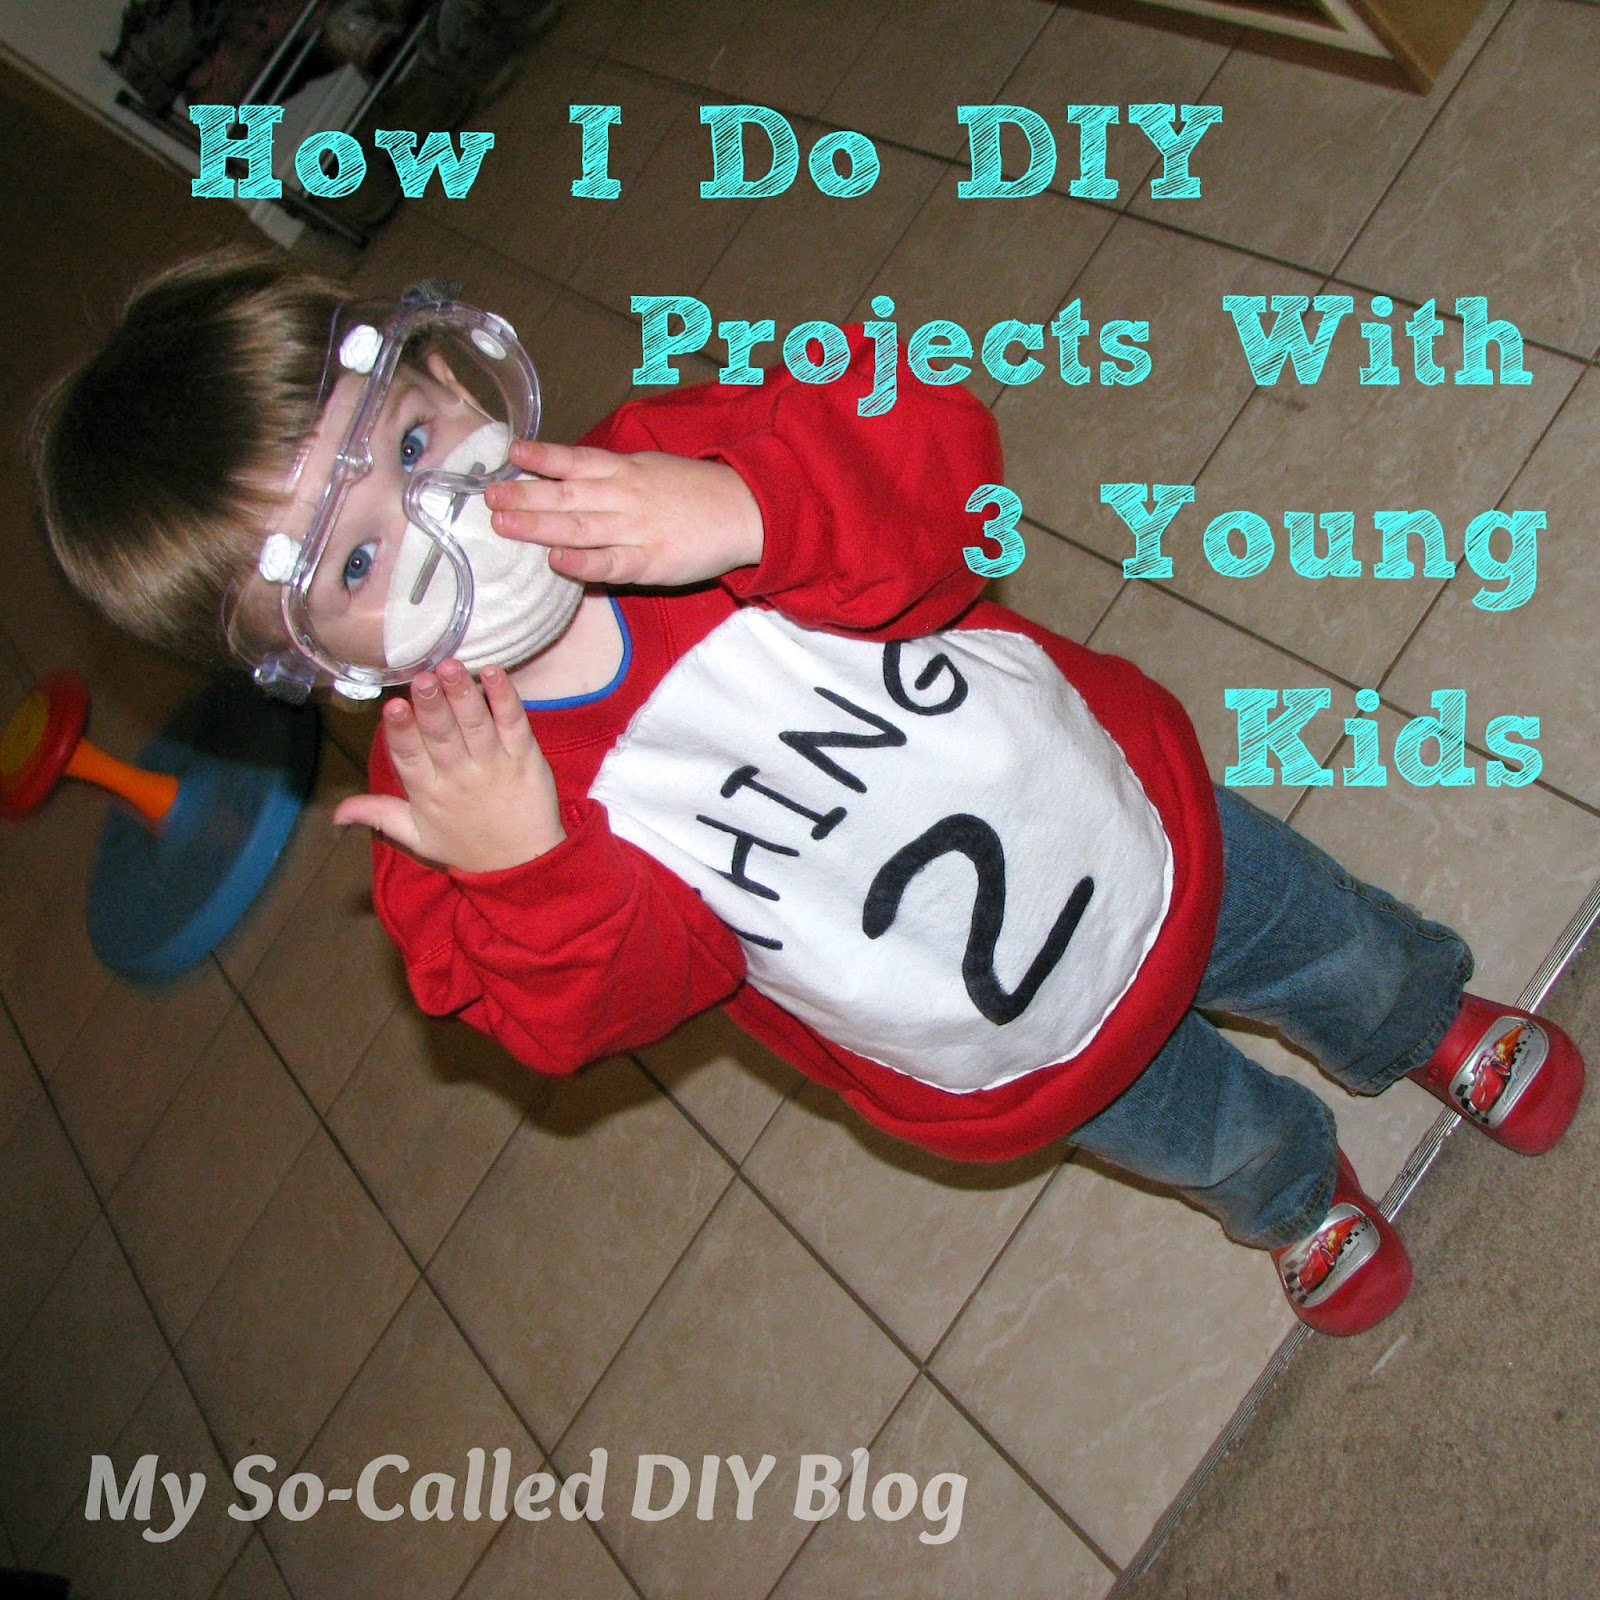 Already Did It Diy Crafts: My So-Called DIY Blog: How I Do DIY Projects With Three